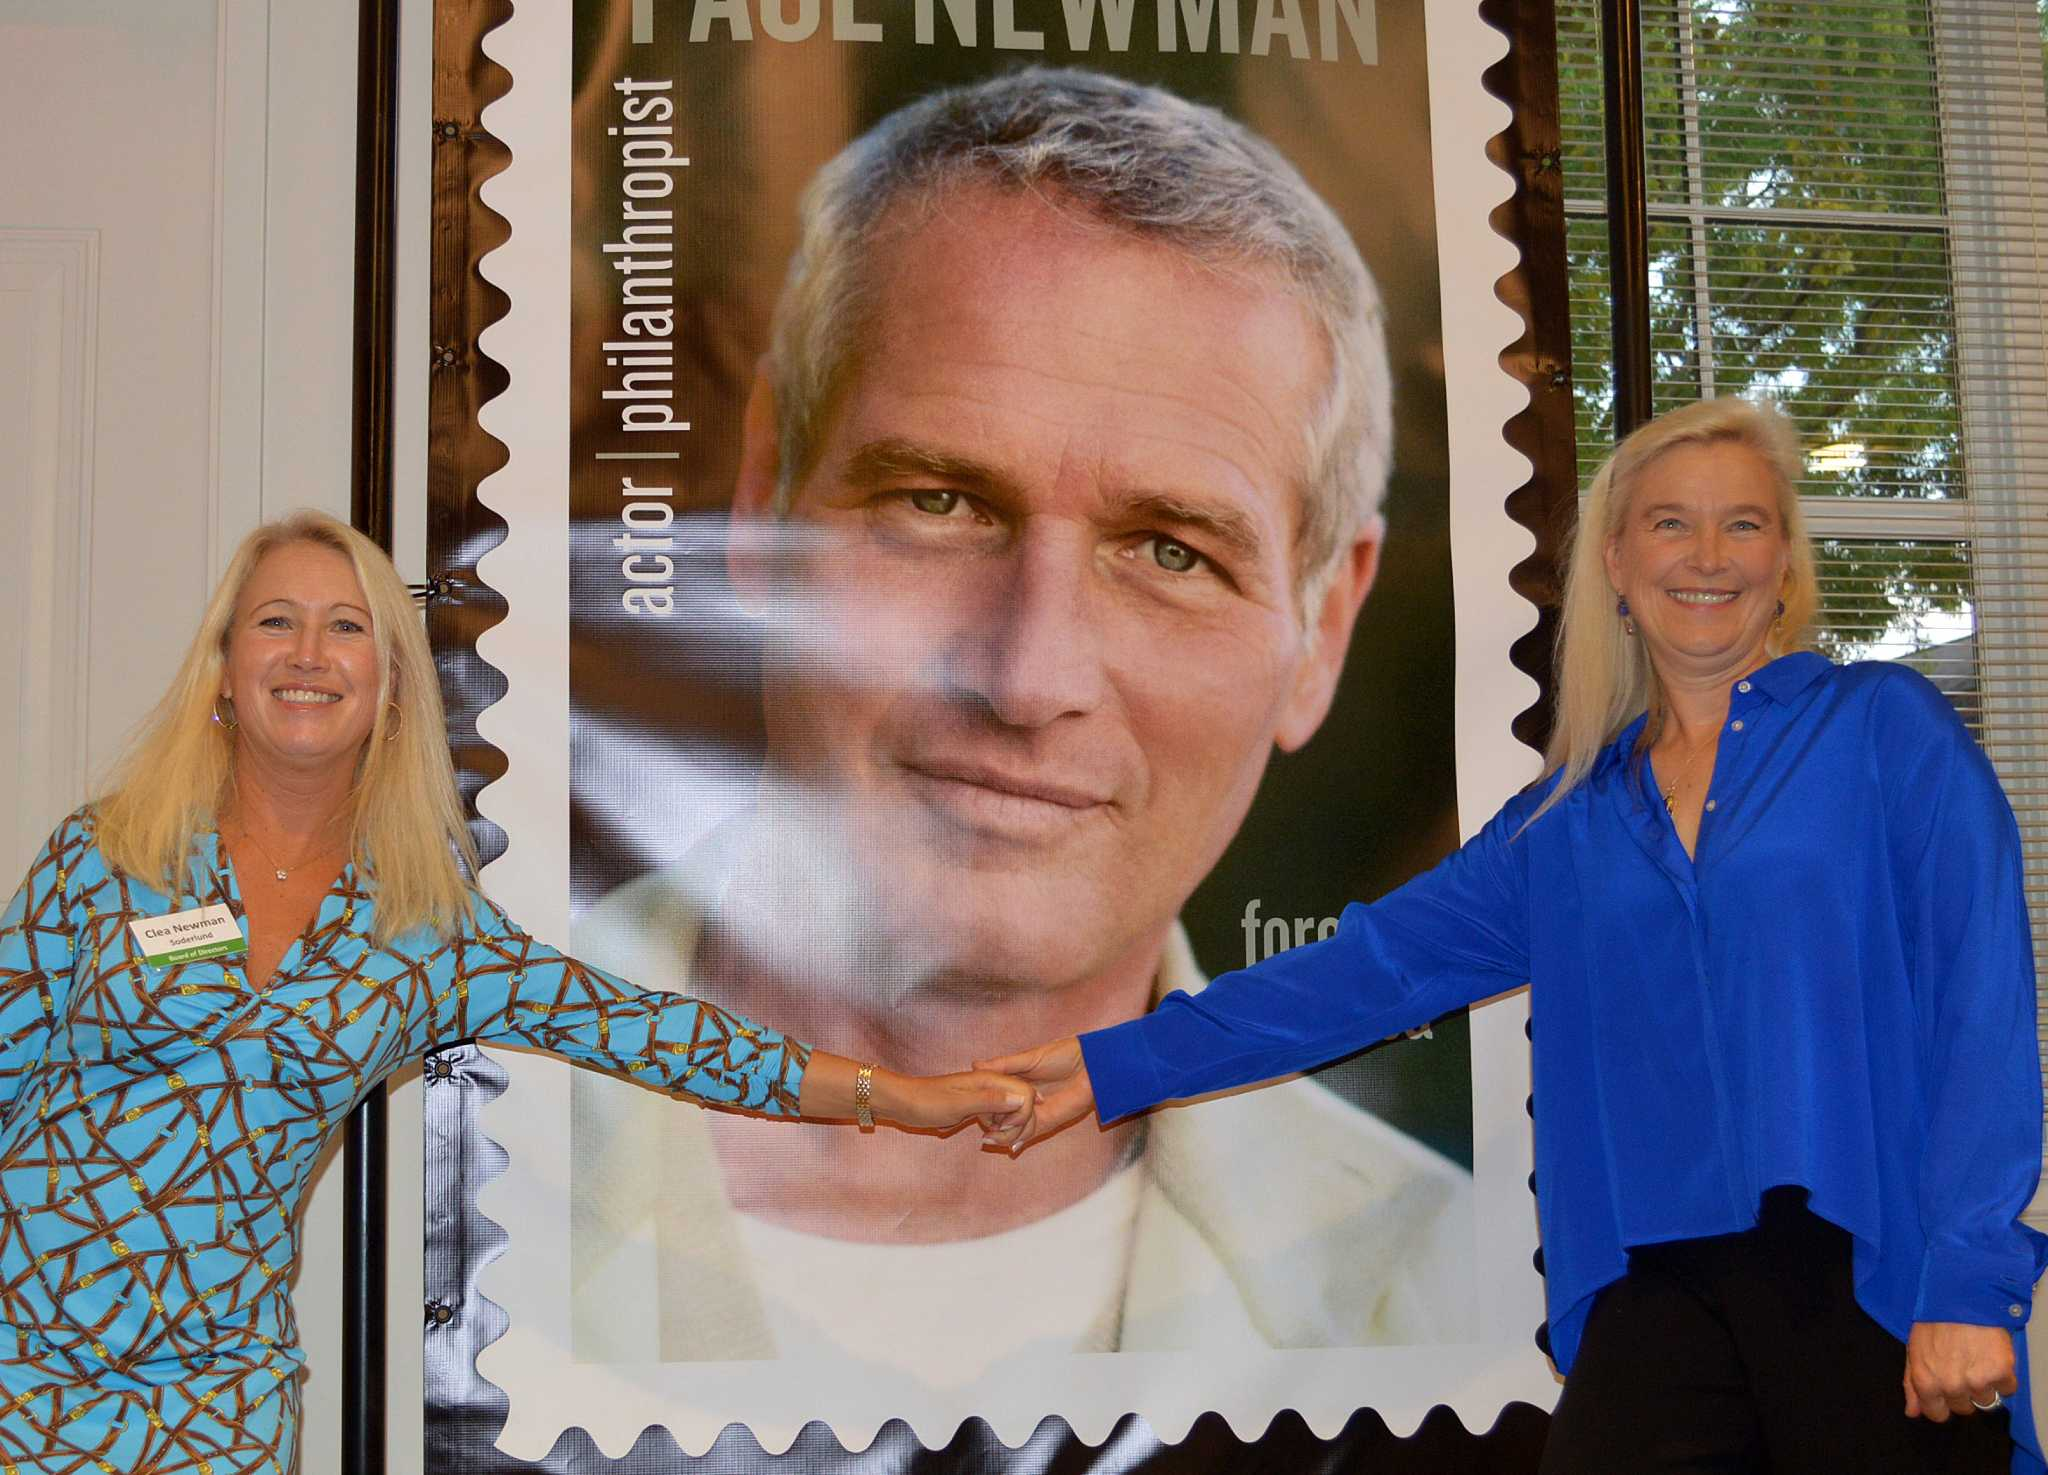 Westports Own Ceremony Marks Issue Of Paul Newman Commemorative Stamp